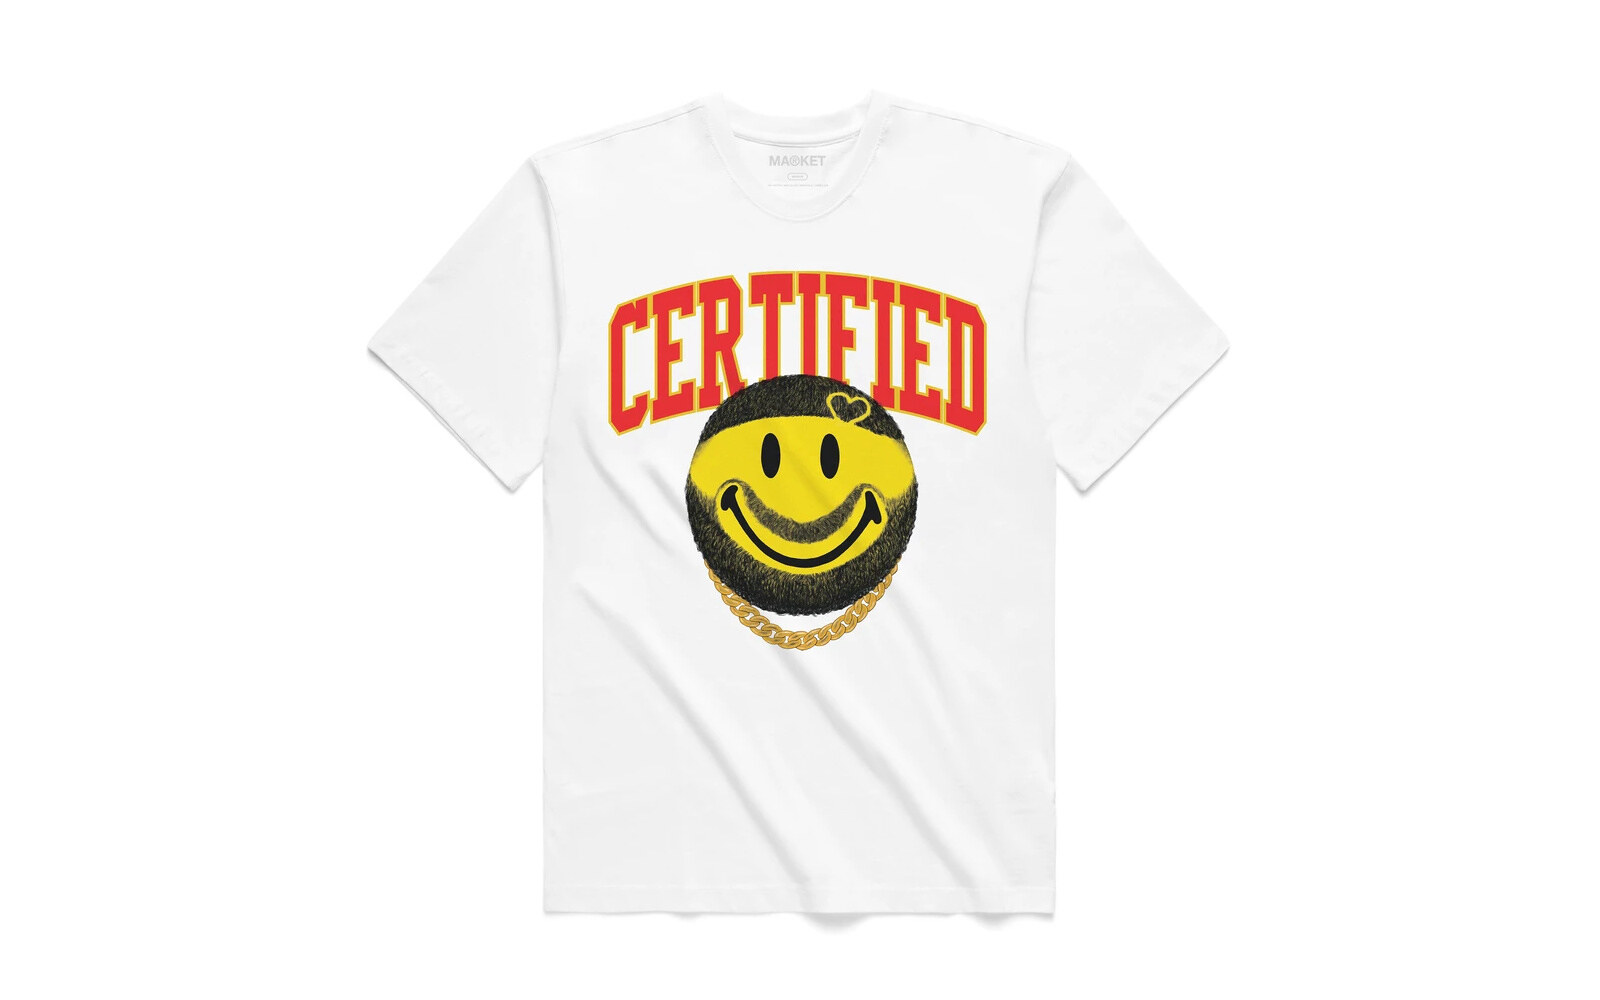 MARKET Certified Lover Boy Capsule Collection